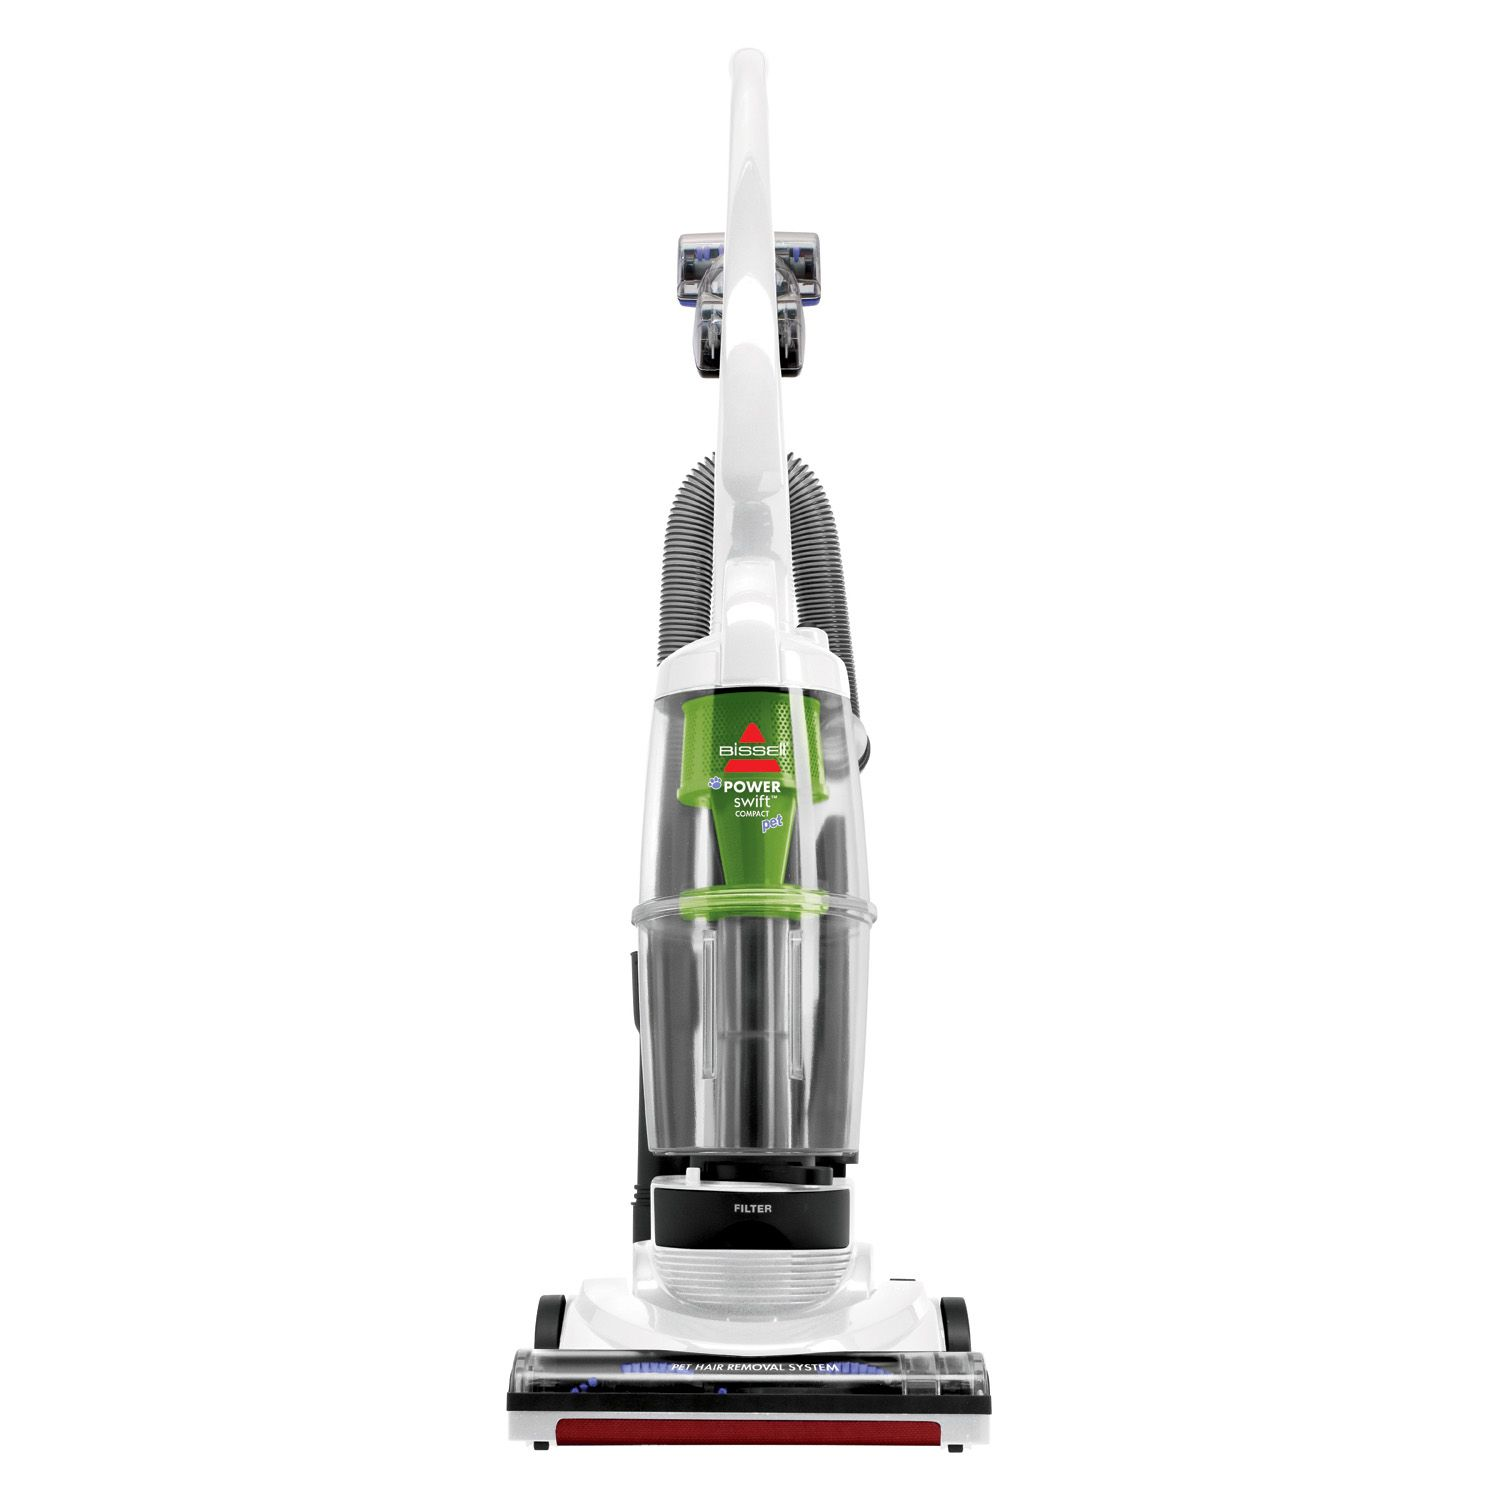 bissell powerswift pet compact upright vacuum 13h8k - Bissell Vacuums